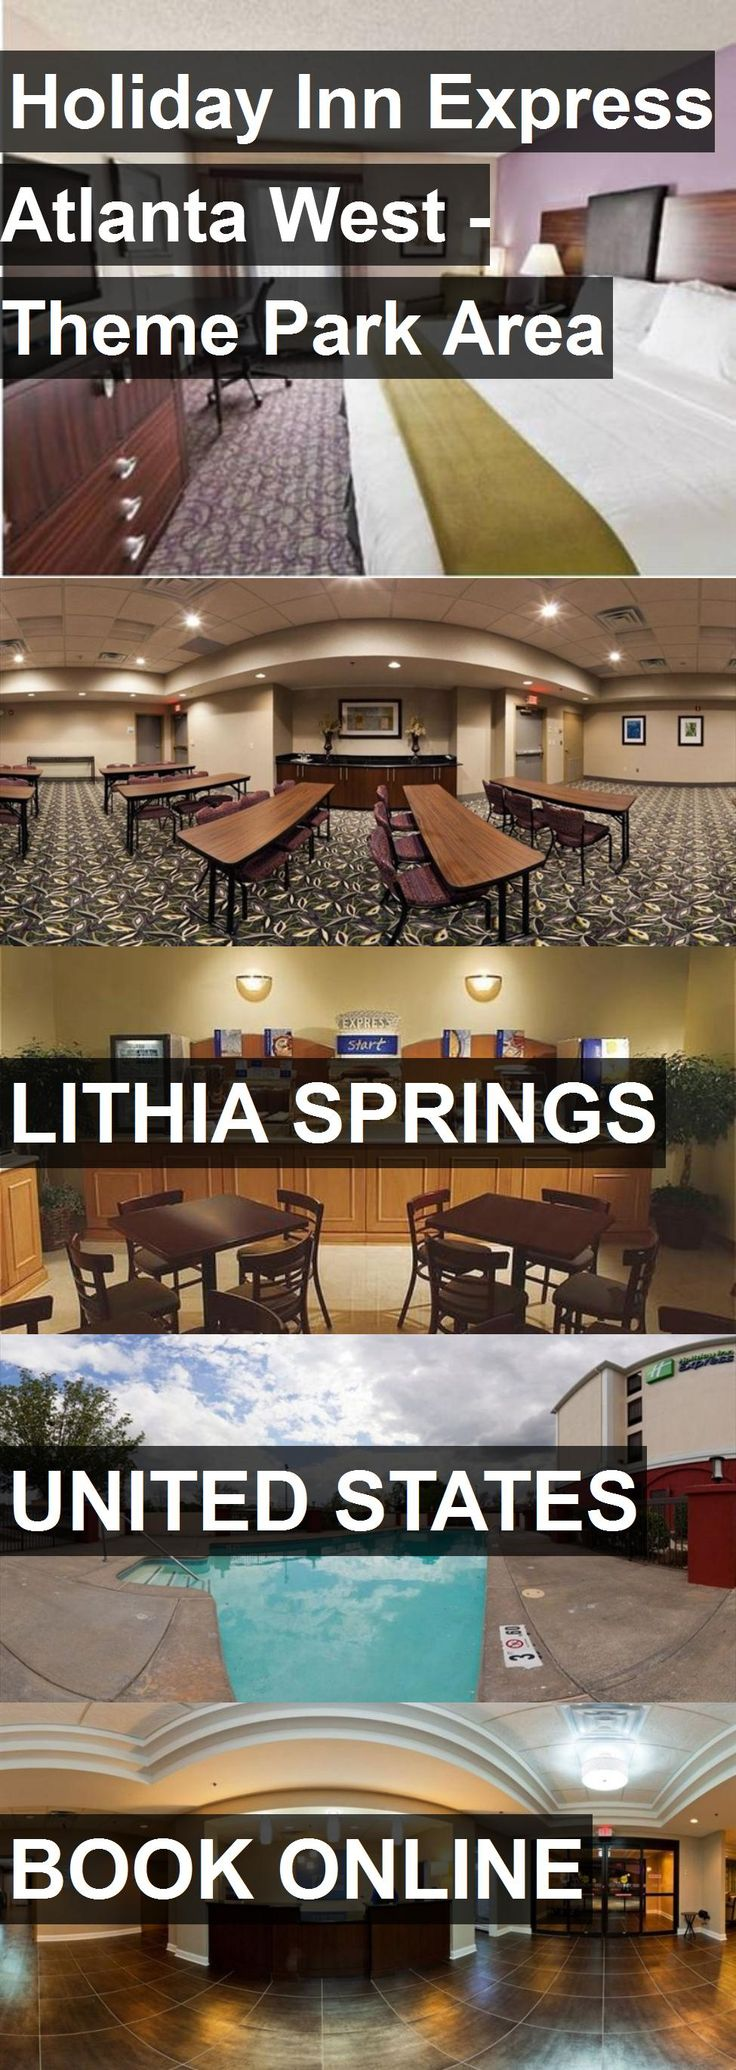 Hotel Holiday Inn Express Atlanta West - Theme Park Area in Lithia Springs, United States. For more information, photos, reviews and best prices please follow the link. #UnitedStates #LithiaSprings #travel #vacation #hotel